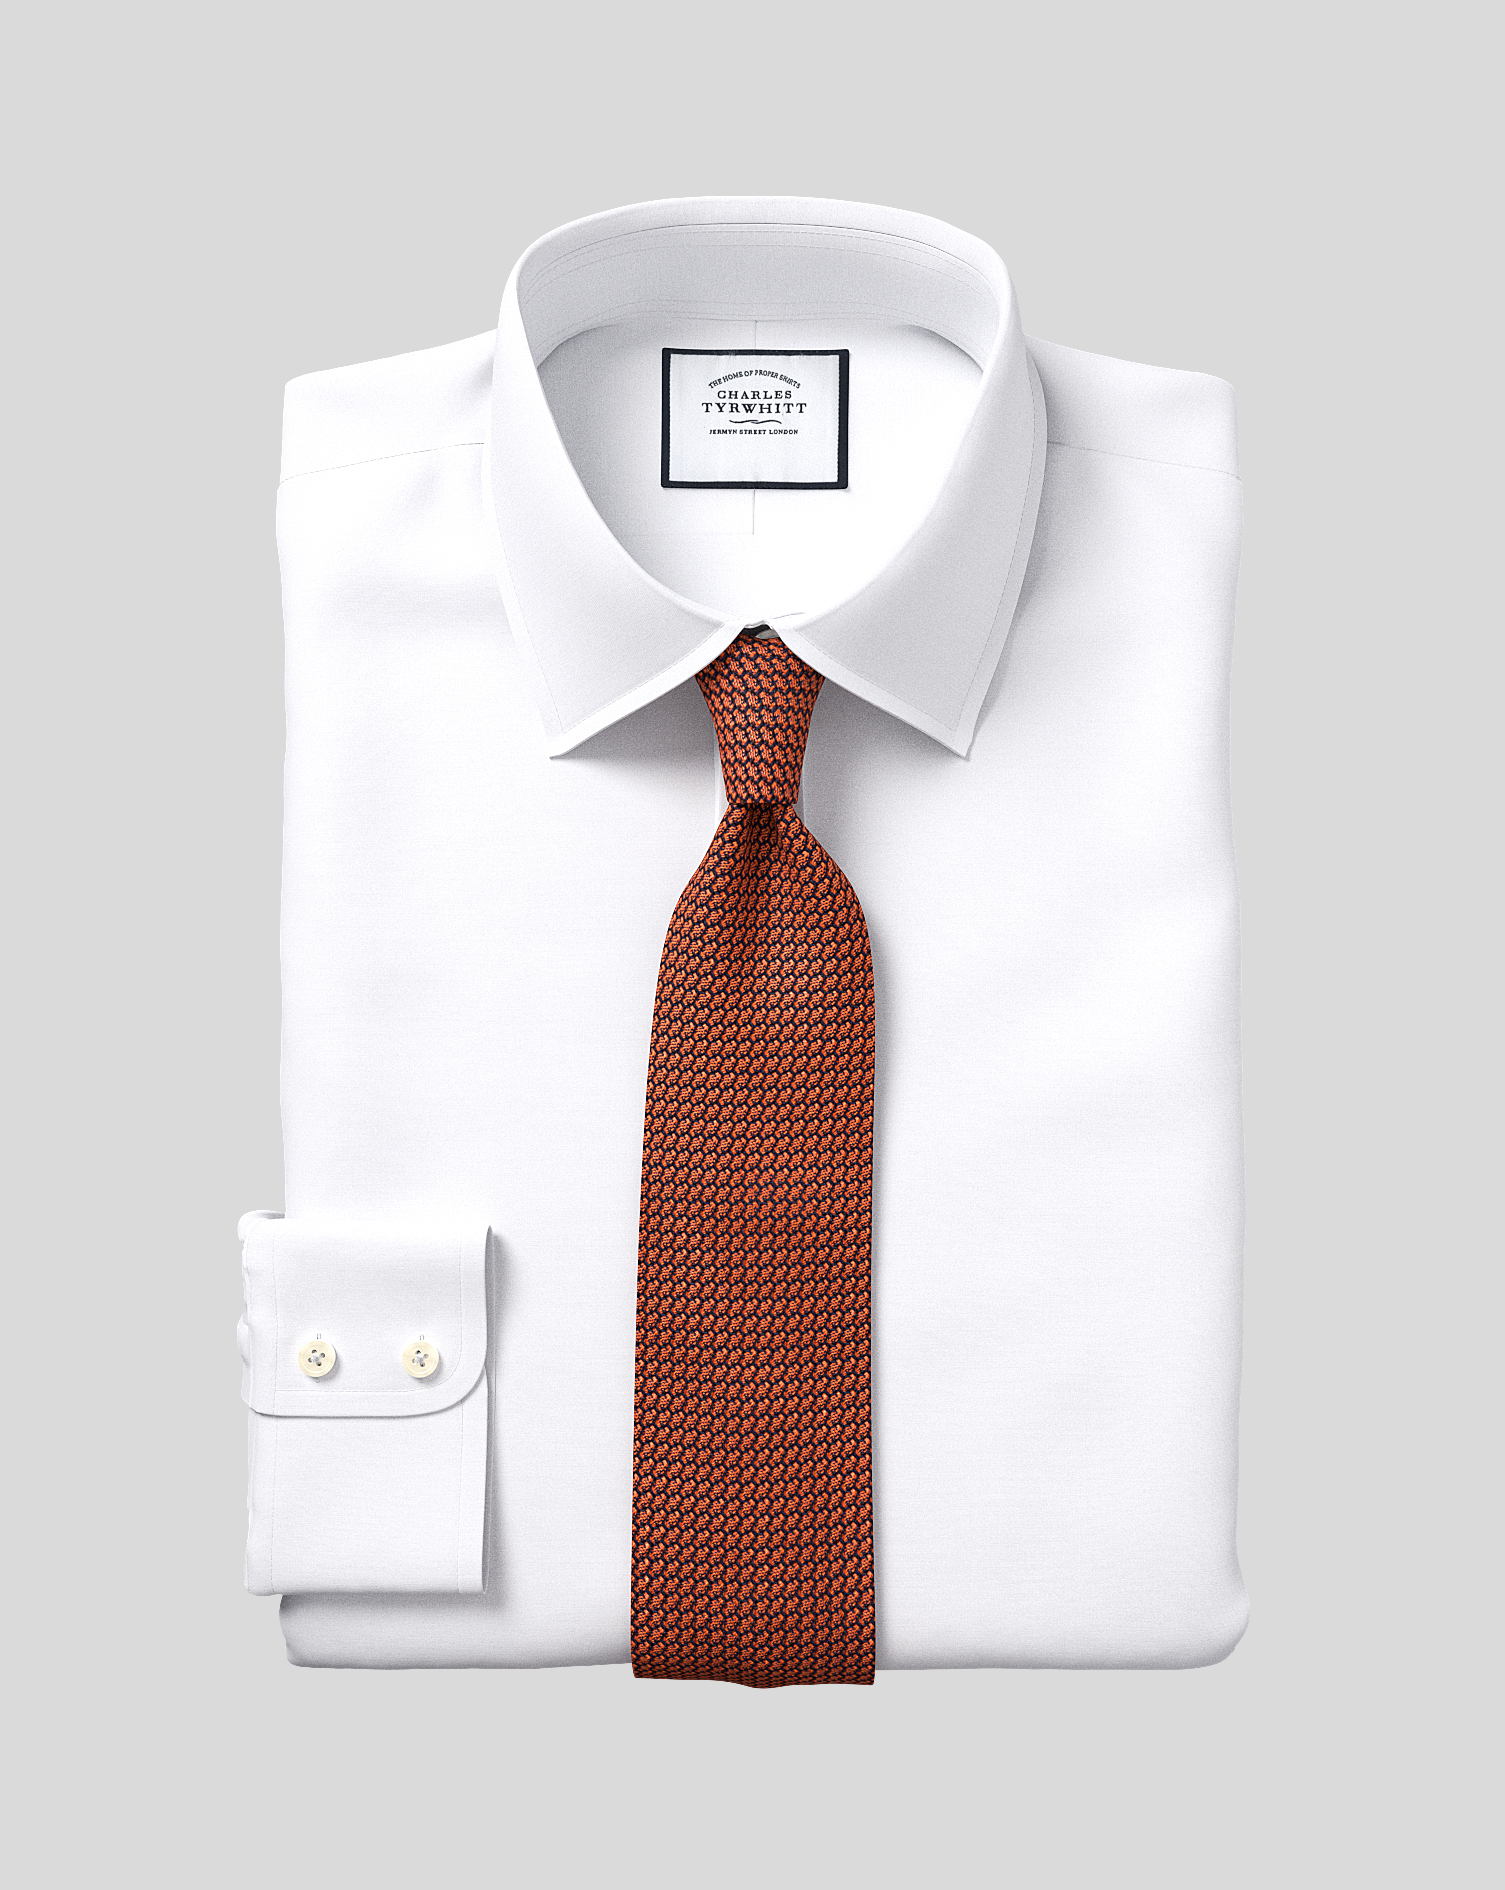 Classic Fit White Egyptian Cotton Poplin Formal Shirt Double Cuff Size 17/35 by Charles Tyrwhitt